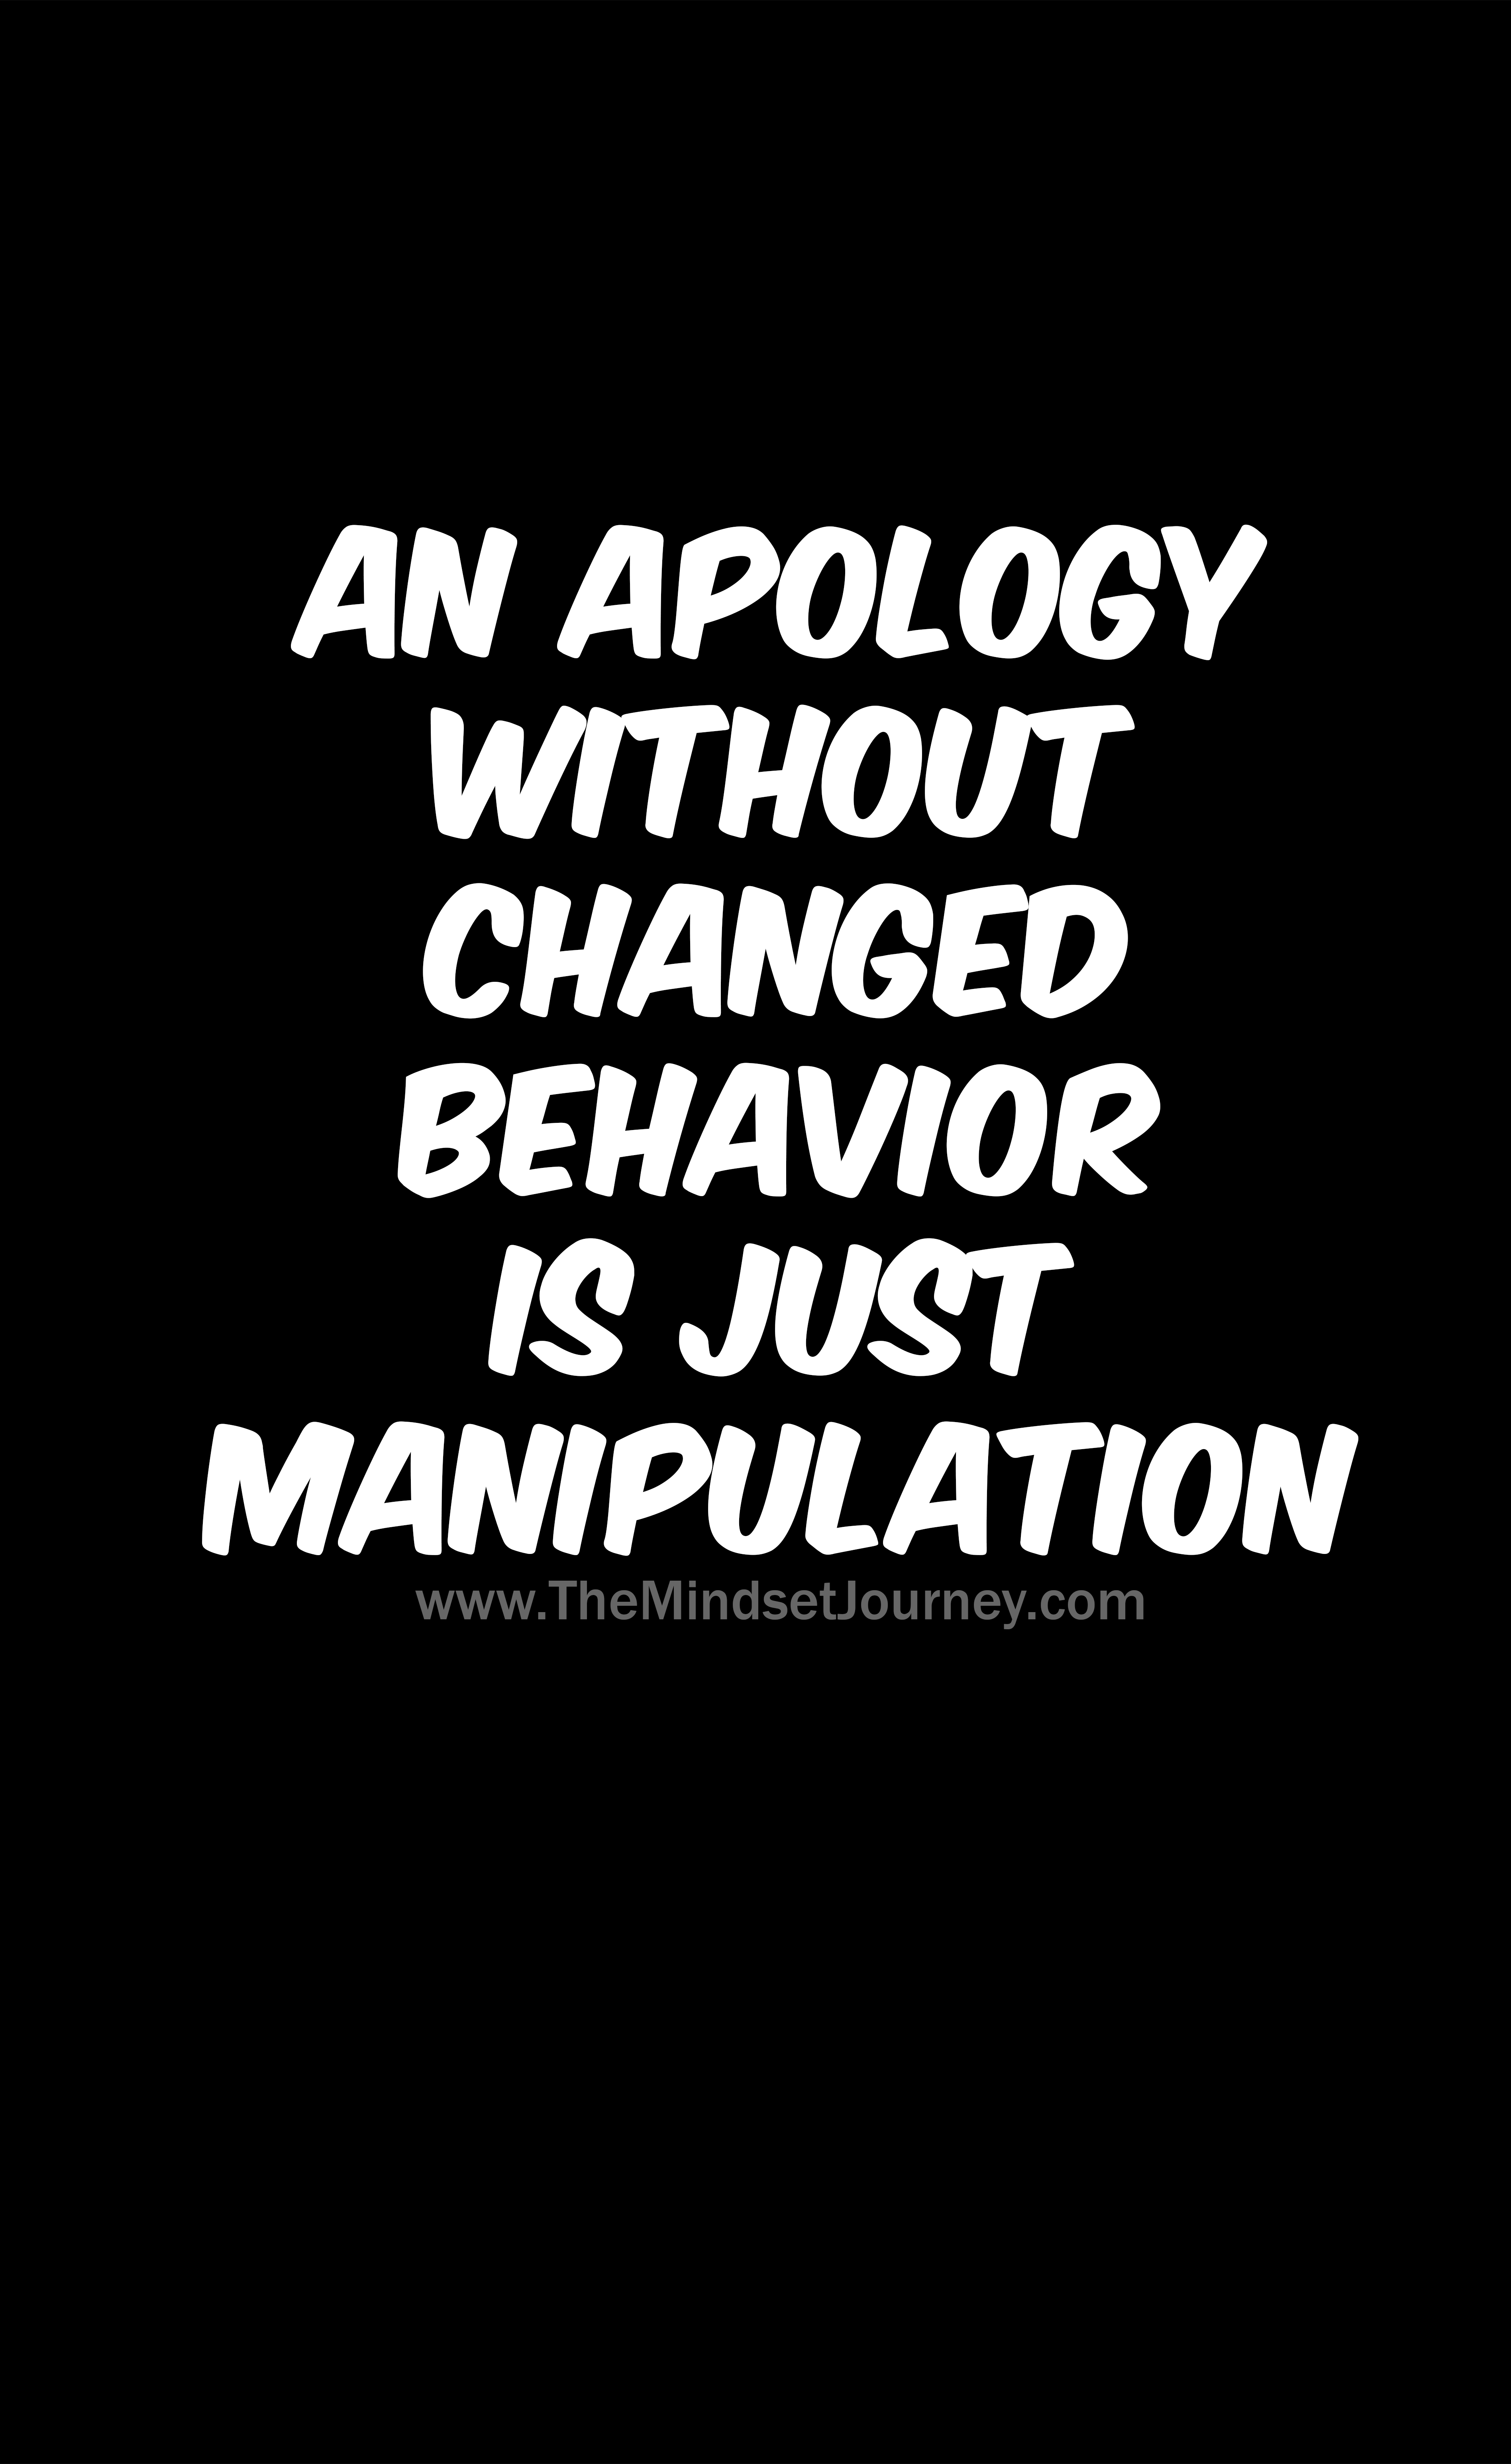 An Apology Without Changed Behavior Is Just Manipulation The Mindset Journey